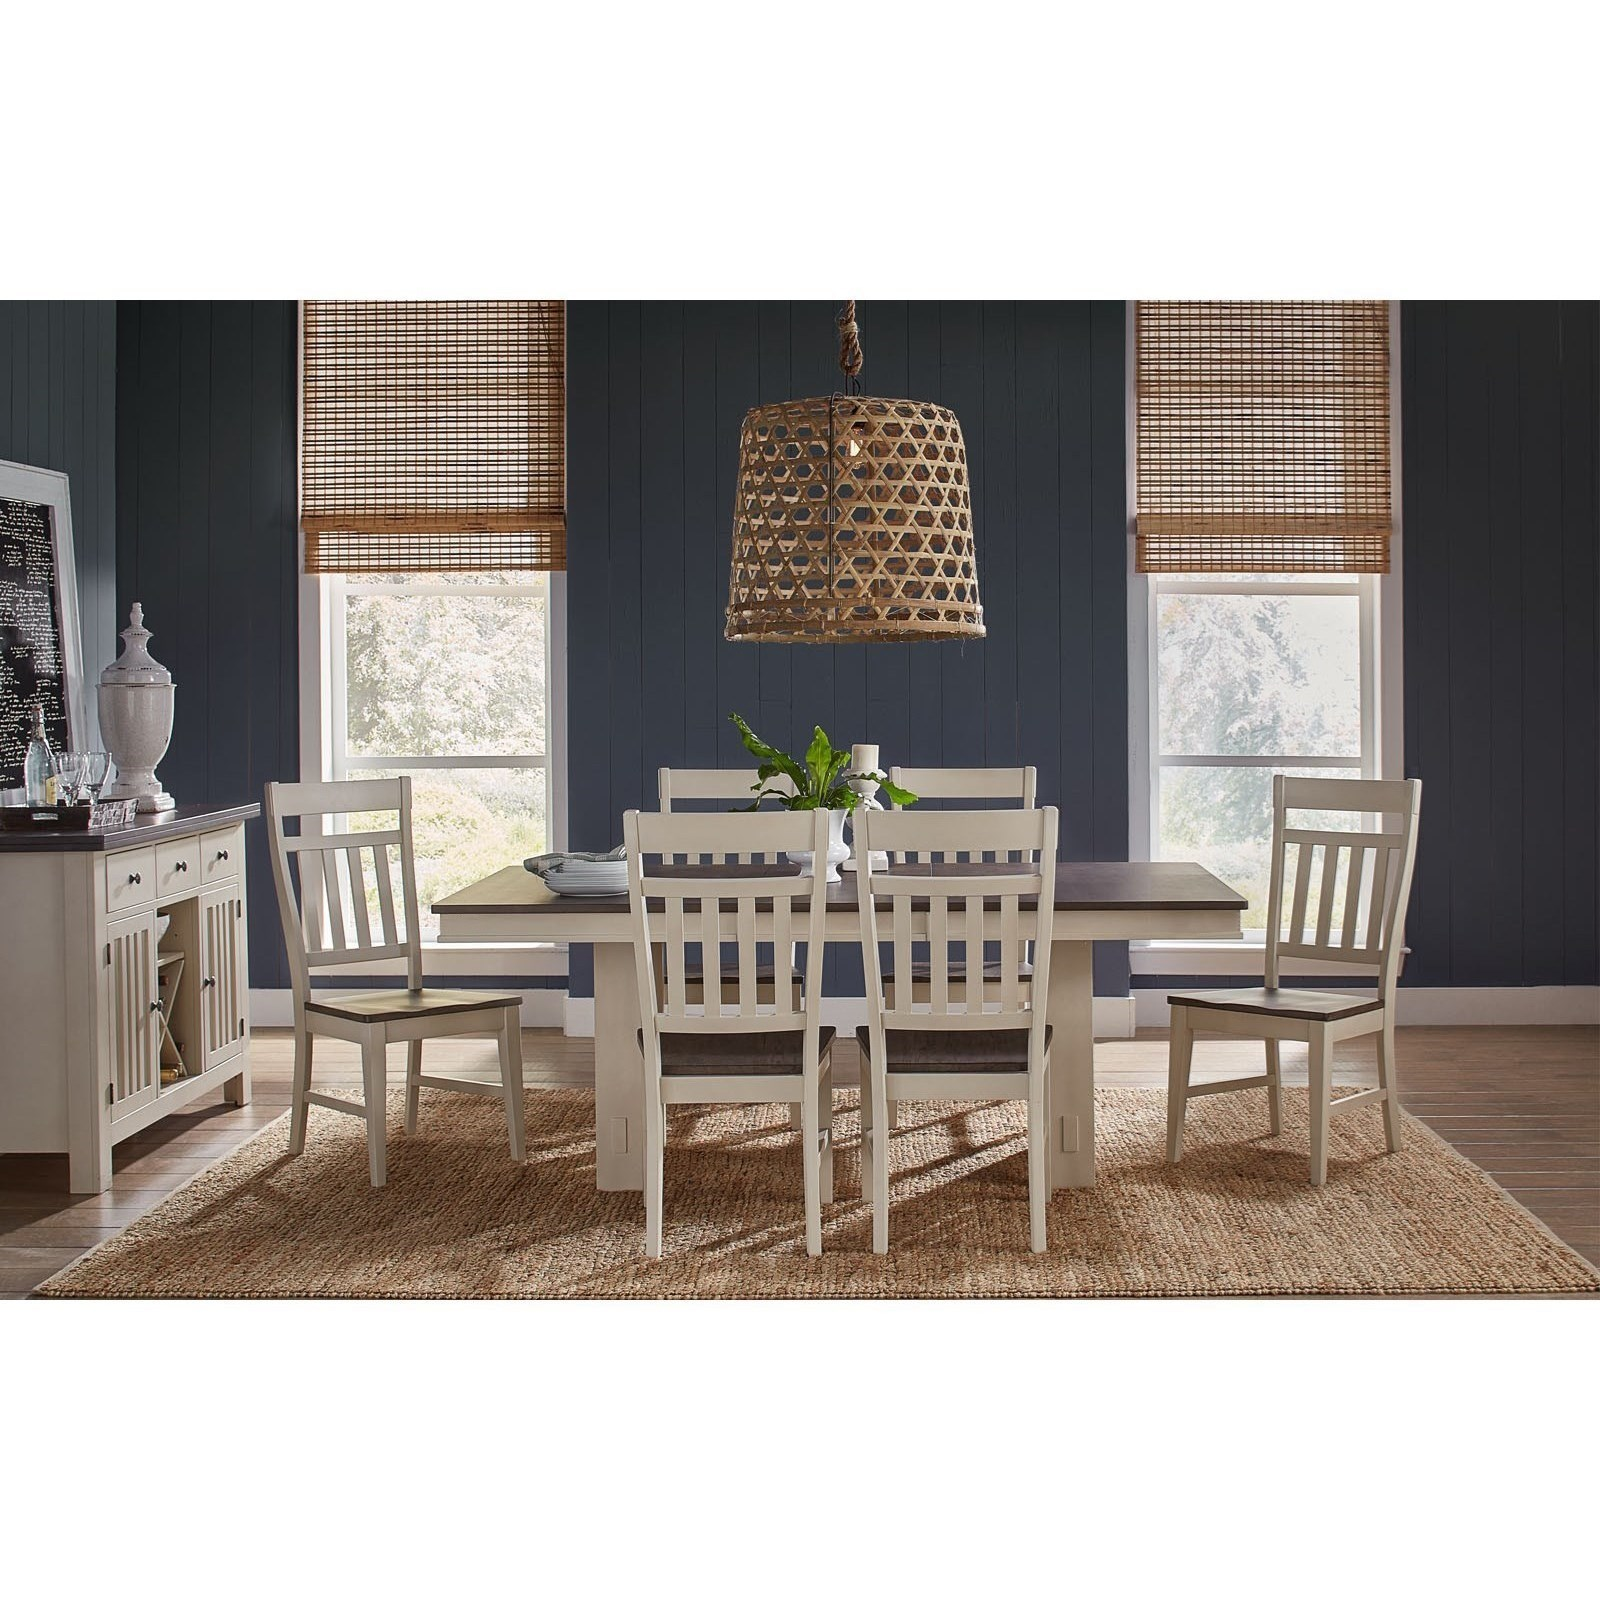 Bremerton 7-Piece Table and Chair Set by AAmerica at Home Furnishings Direct